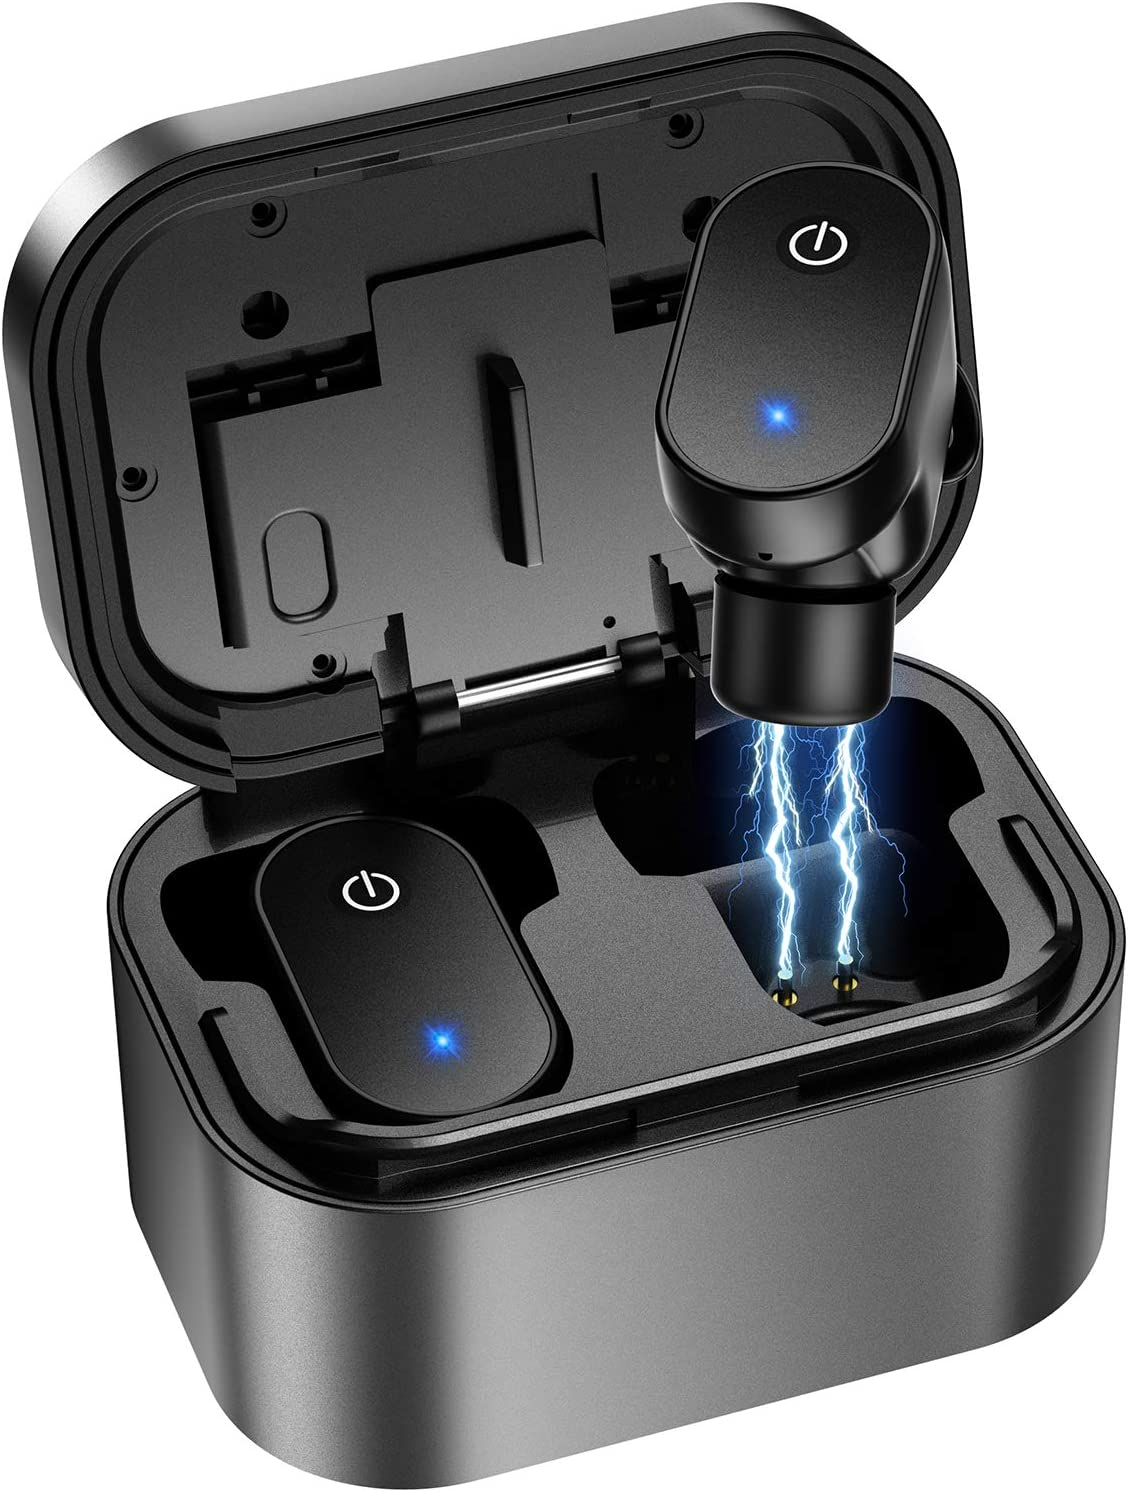 True Wireless Earbuds, Bluetooth 5.0 Headphones in-Ear with Wireless Charging Case, 24H Cycle Playtime, Built-in Mic Headset Premium Sound with Deep Bass for Sport